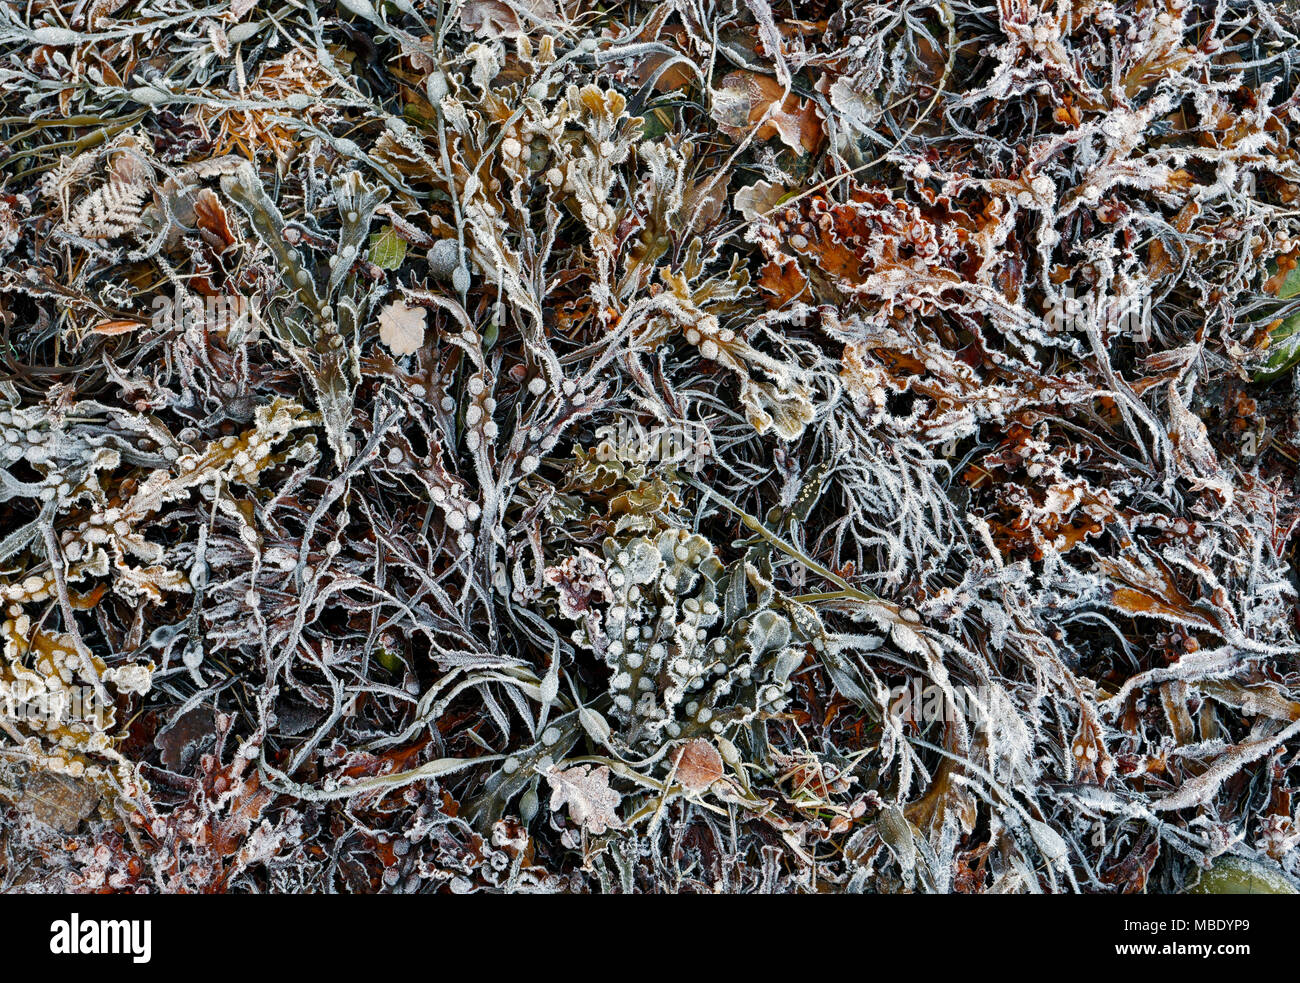 A close-up view of seaweed and kelp along the shores of Loch Sunart in the Scottish Highlands. - Stock Image